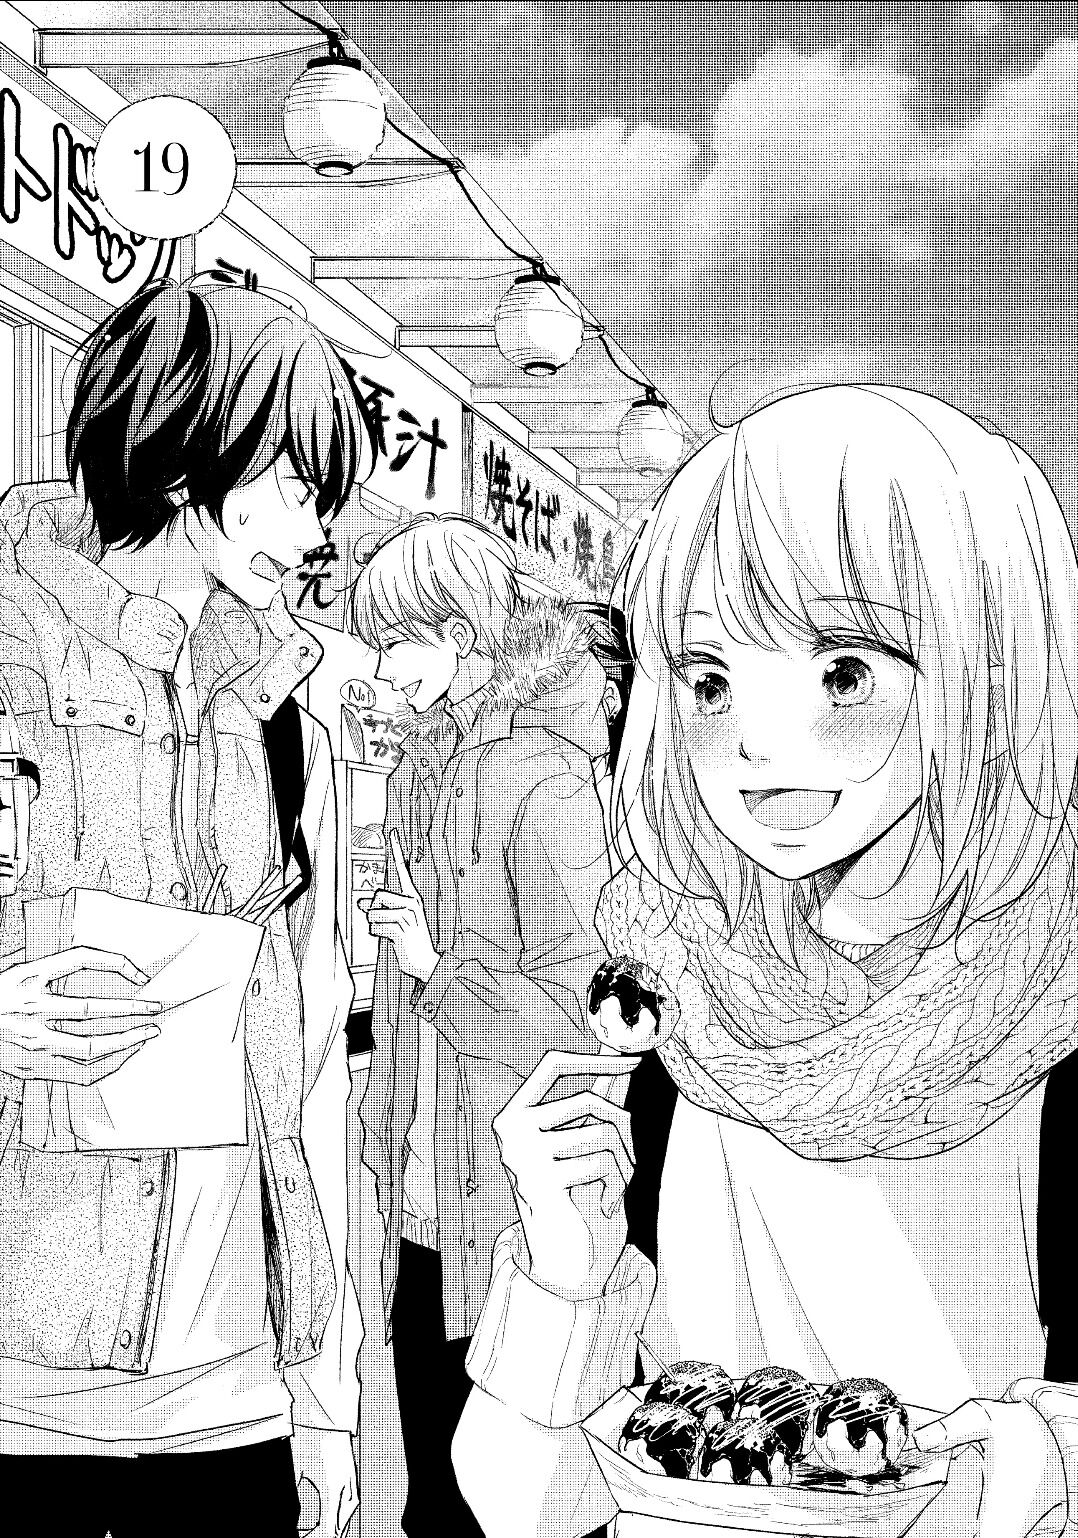 A Kiss, For Real - chapter 19 - #1